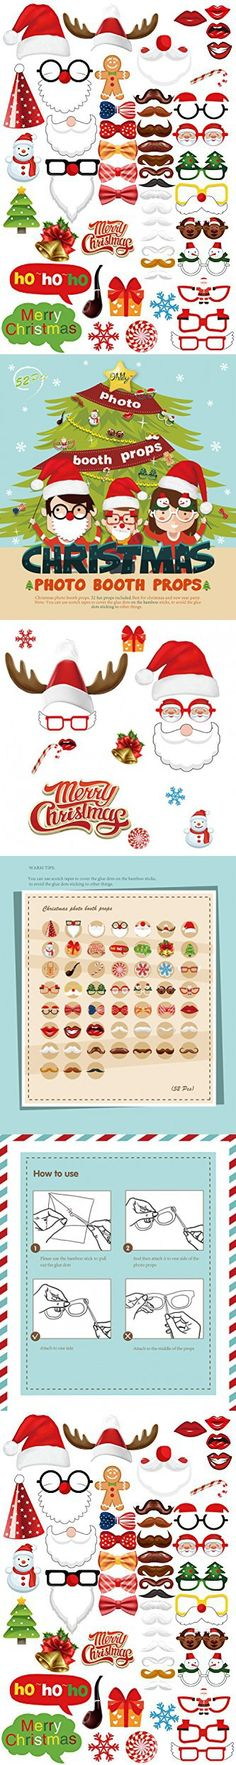 MOT Global Christmas Photo Booth Props 52 Pieces DIY Kits Party Supplies with 4 Free Bonus Bookmarks